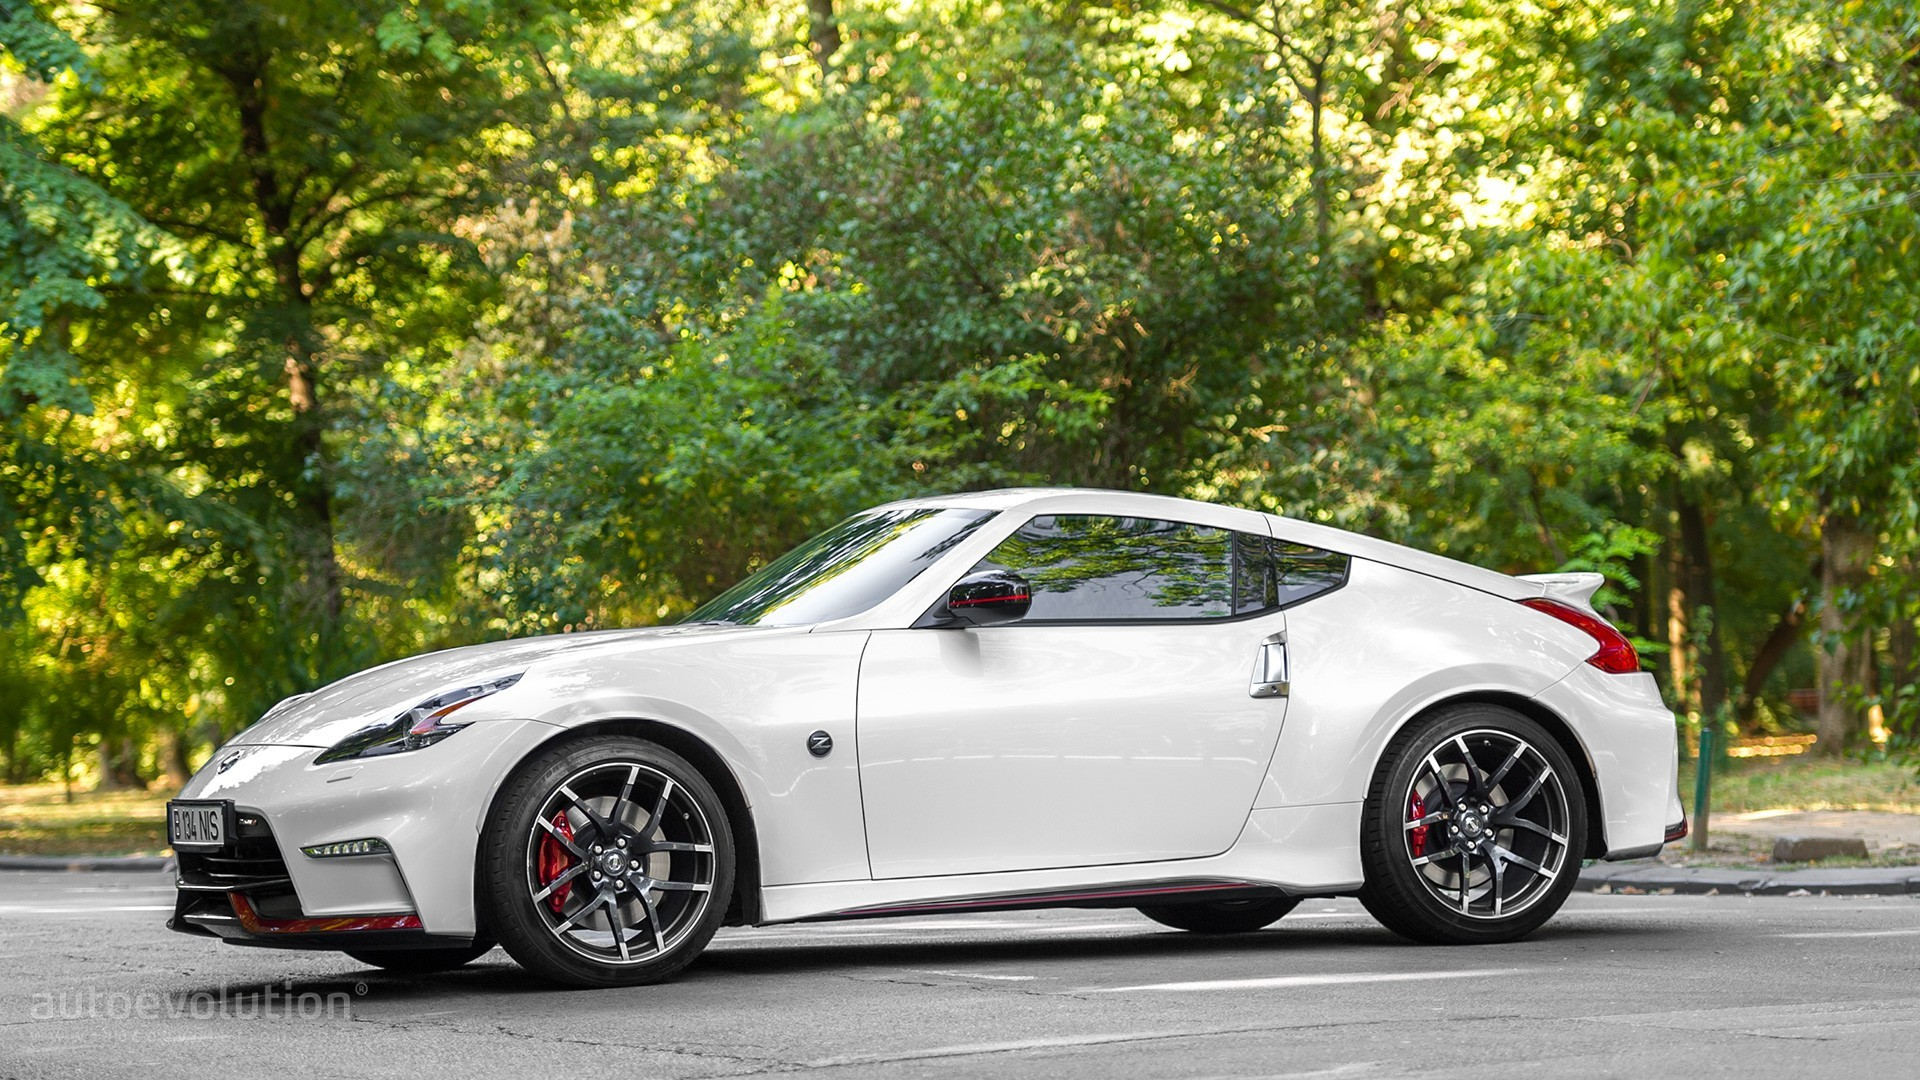 Patrol Nismo >> Nissan 370Z Replacement Being Shown in Tokyo With 2017 GT-R Styling - autoevolution